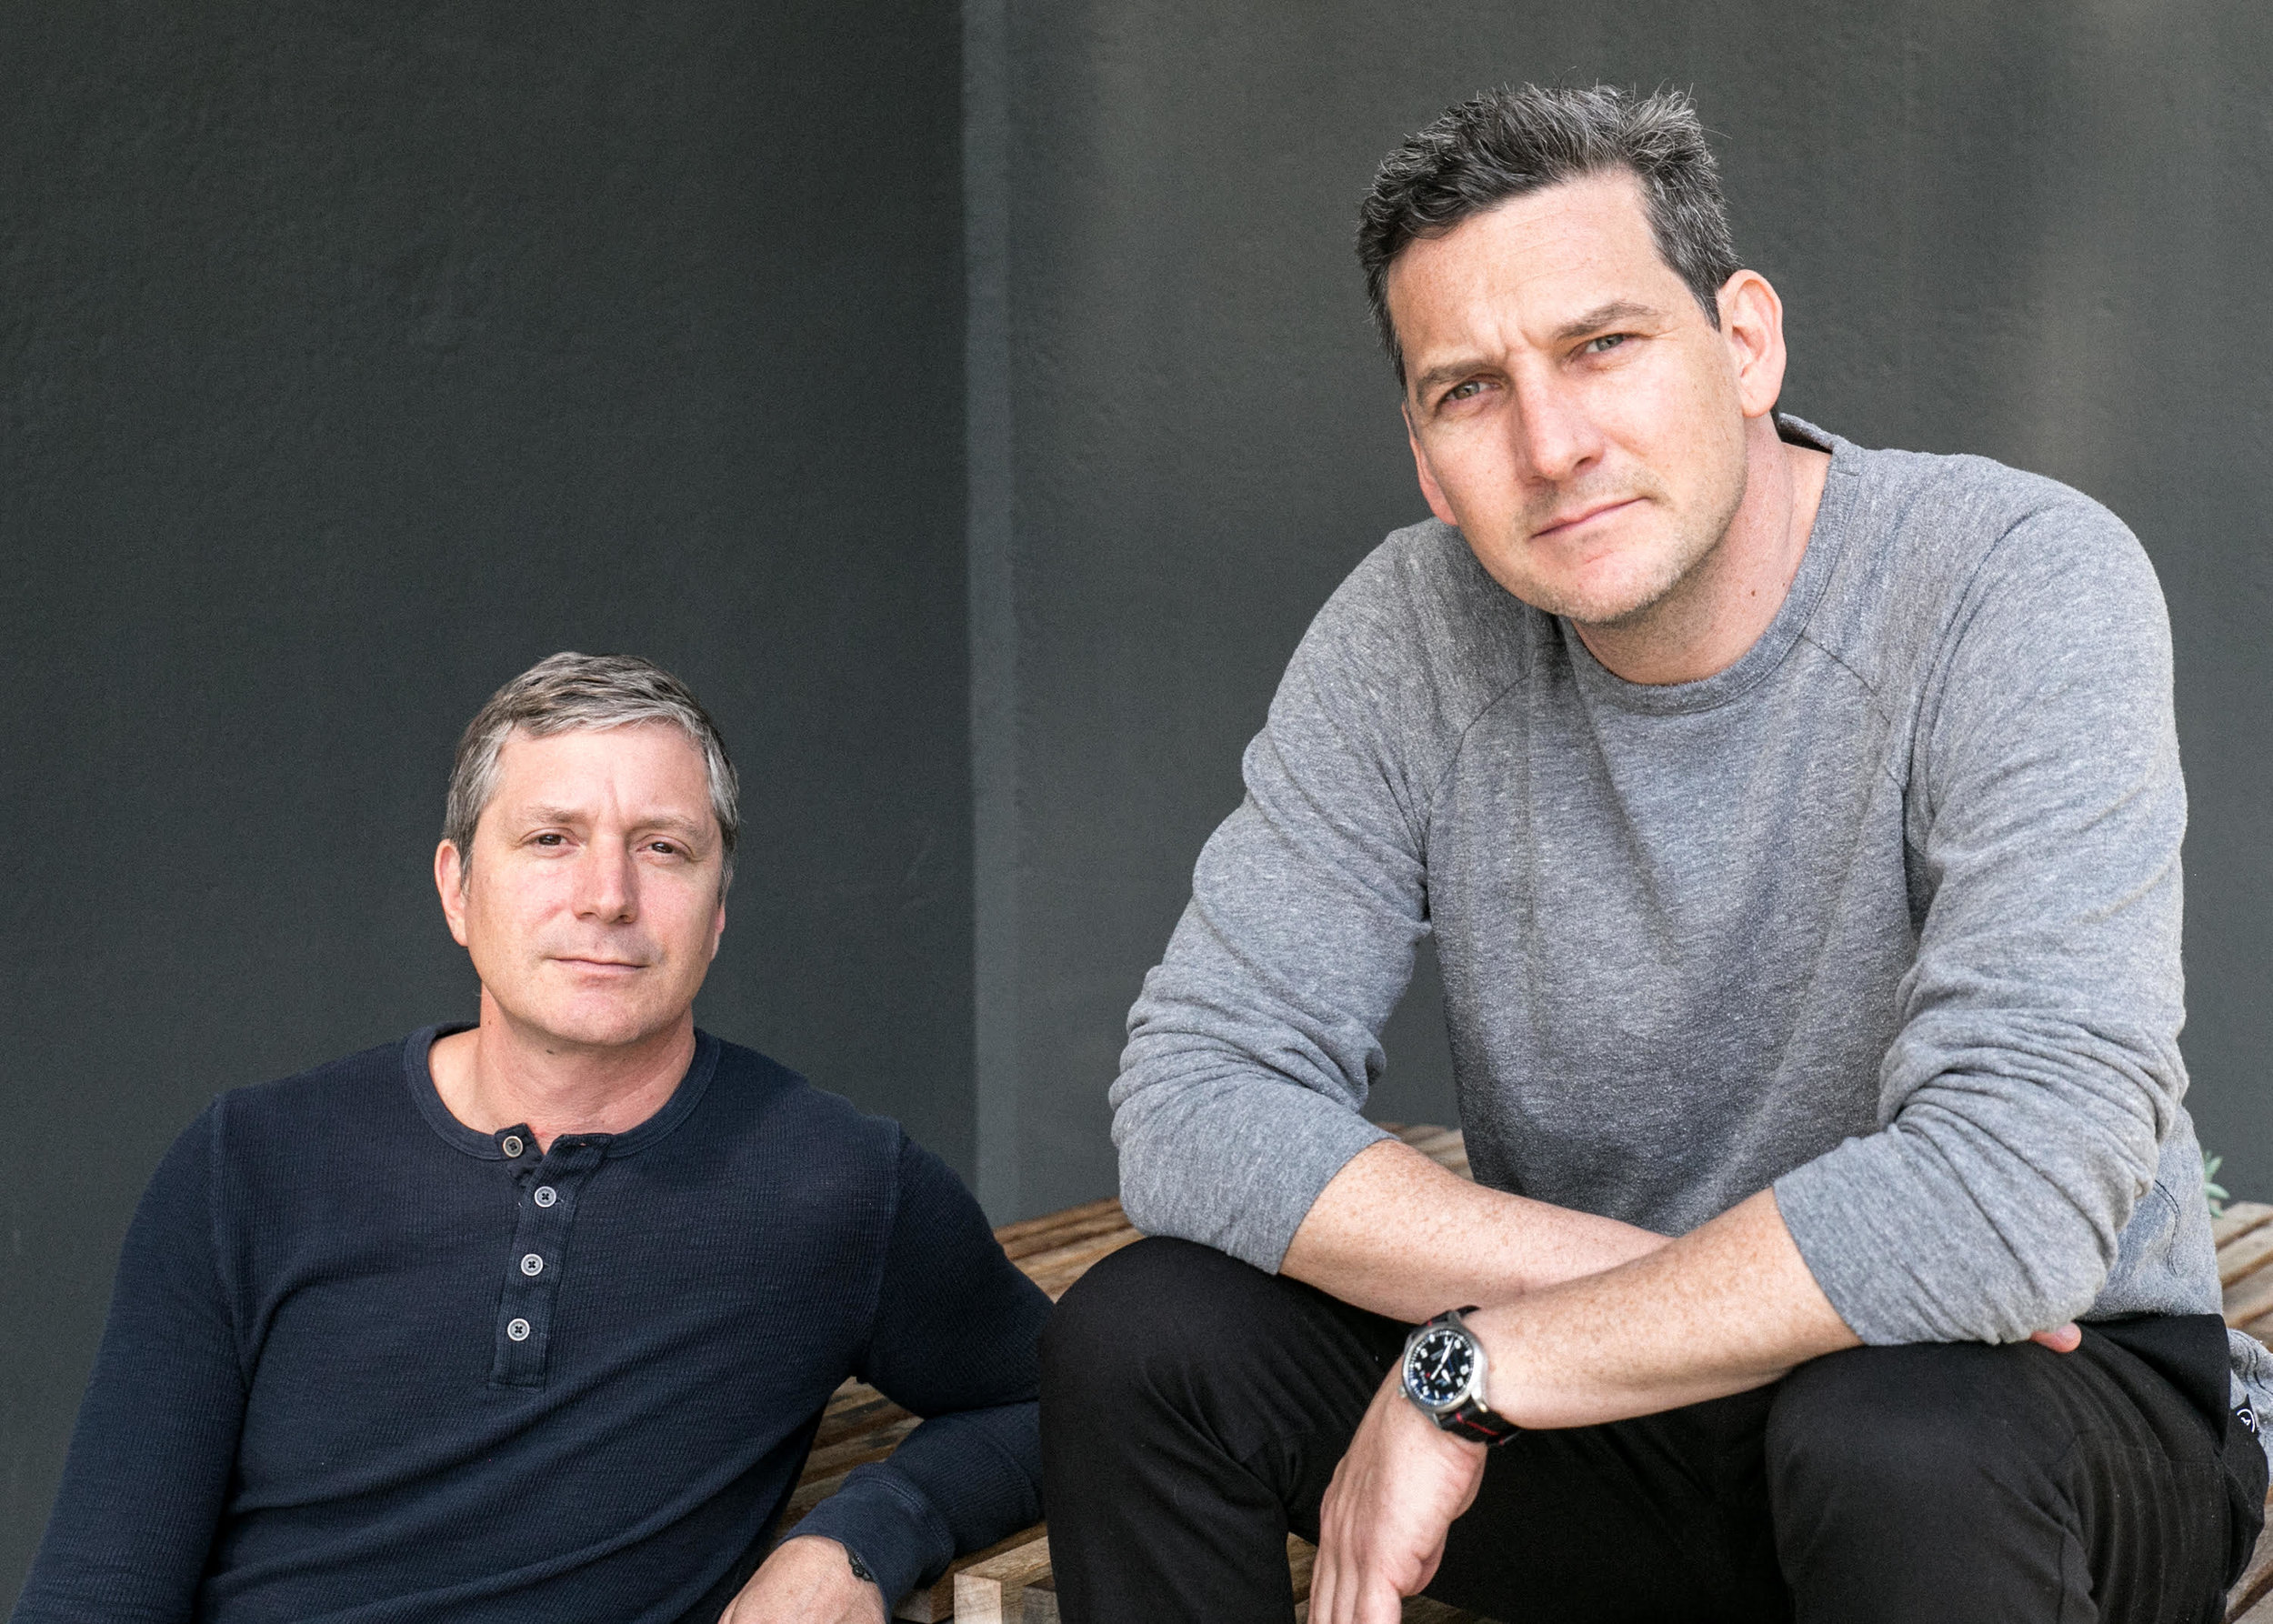 Palmer West (left) and Jonah Smith, founders of Aether Apparel